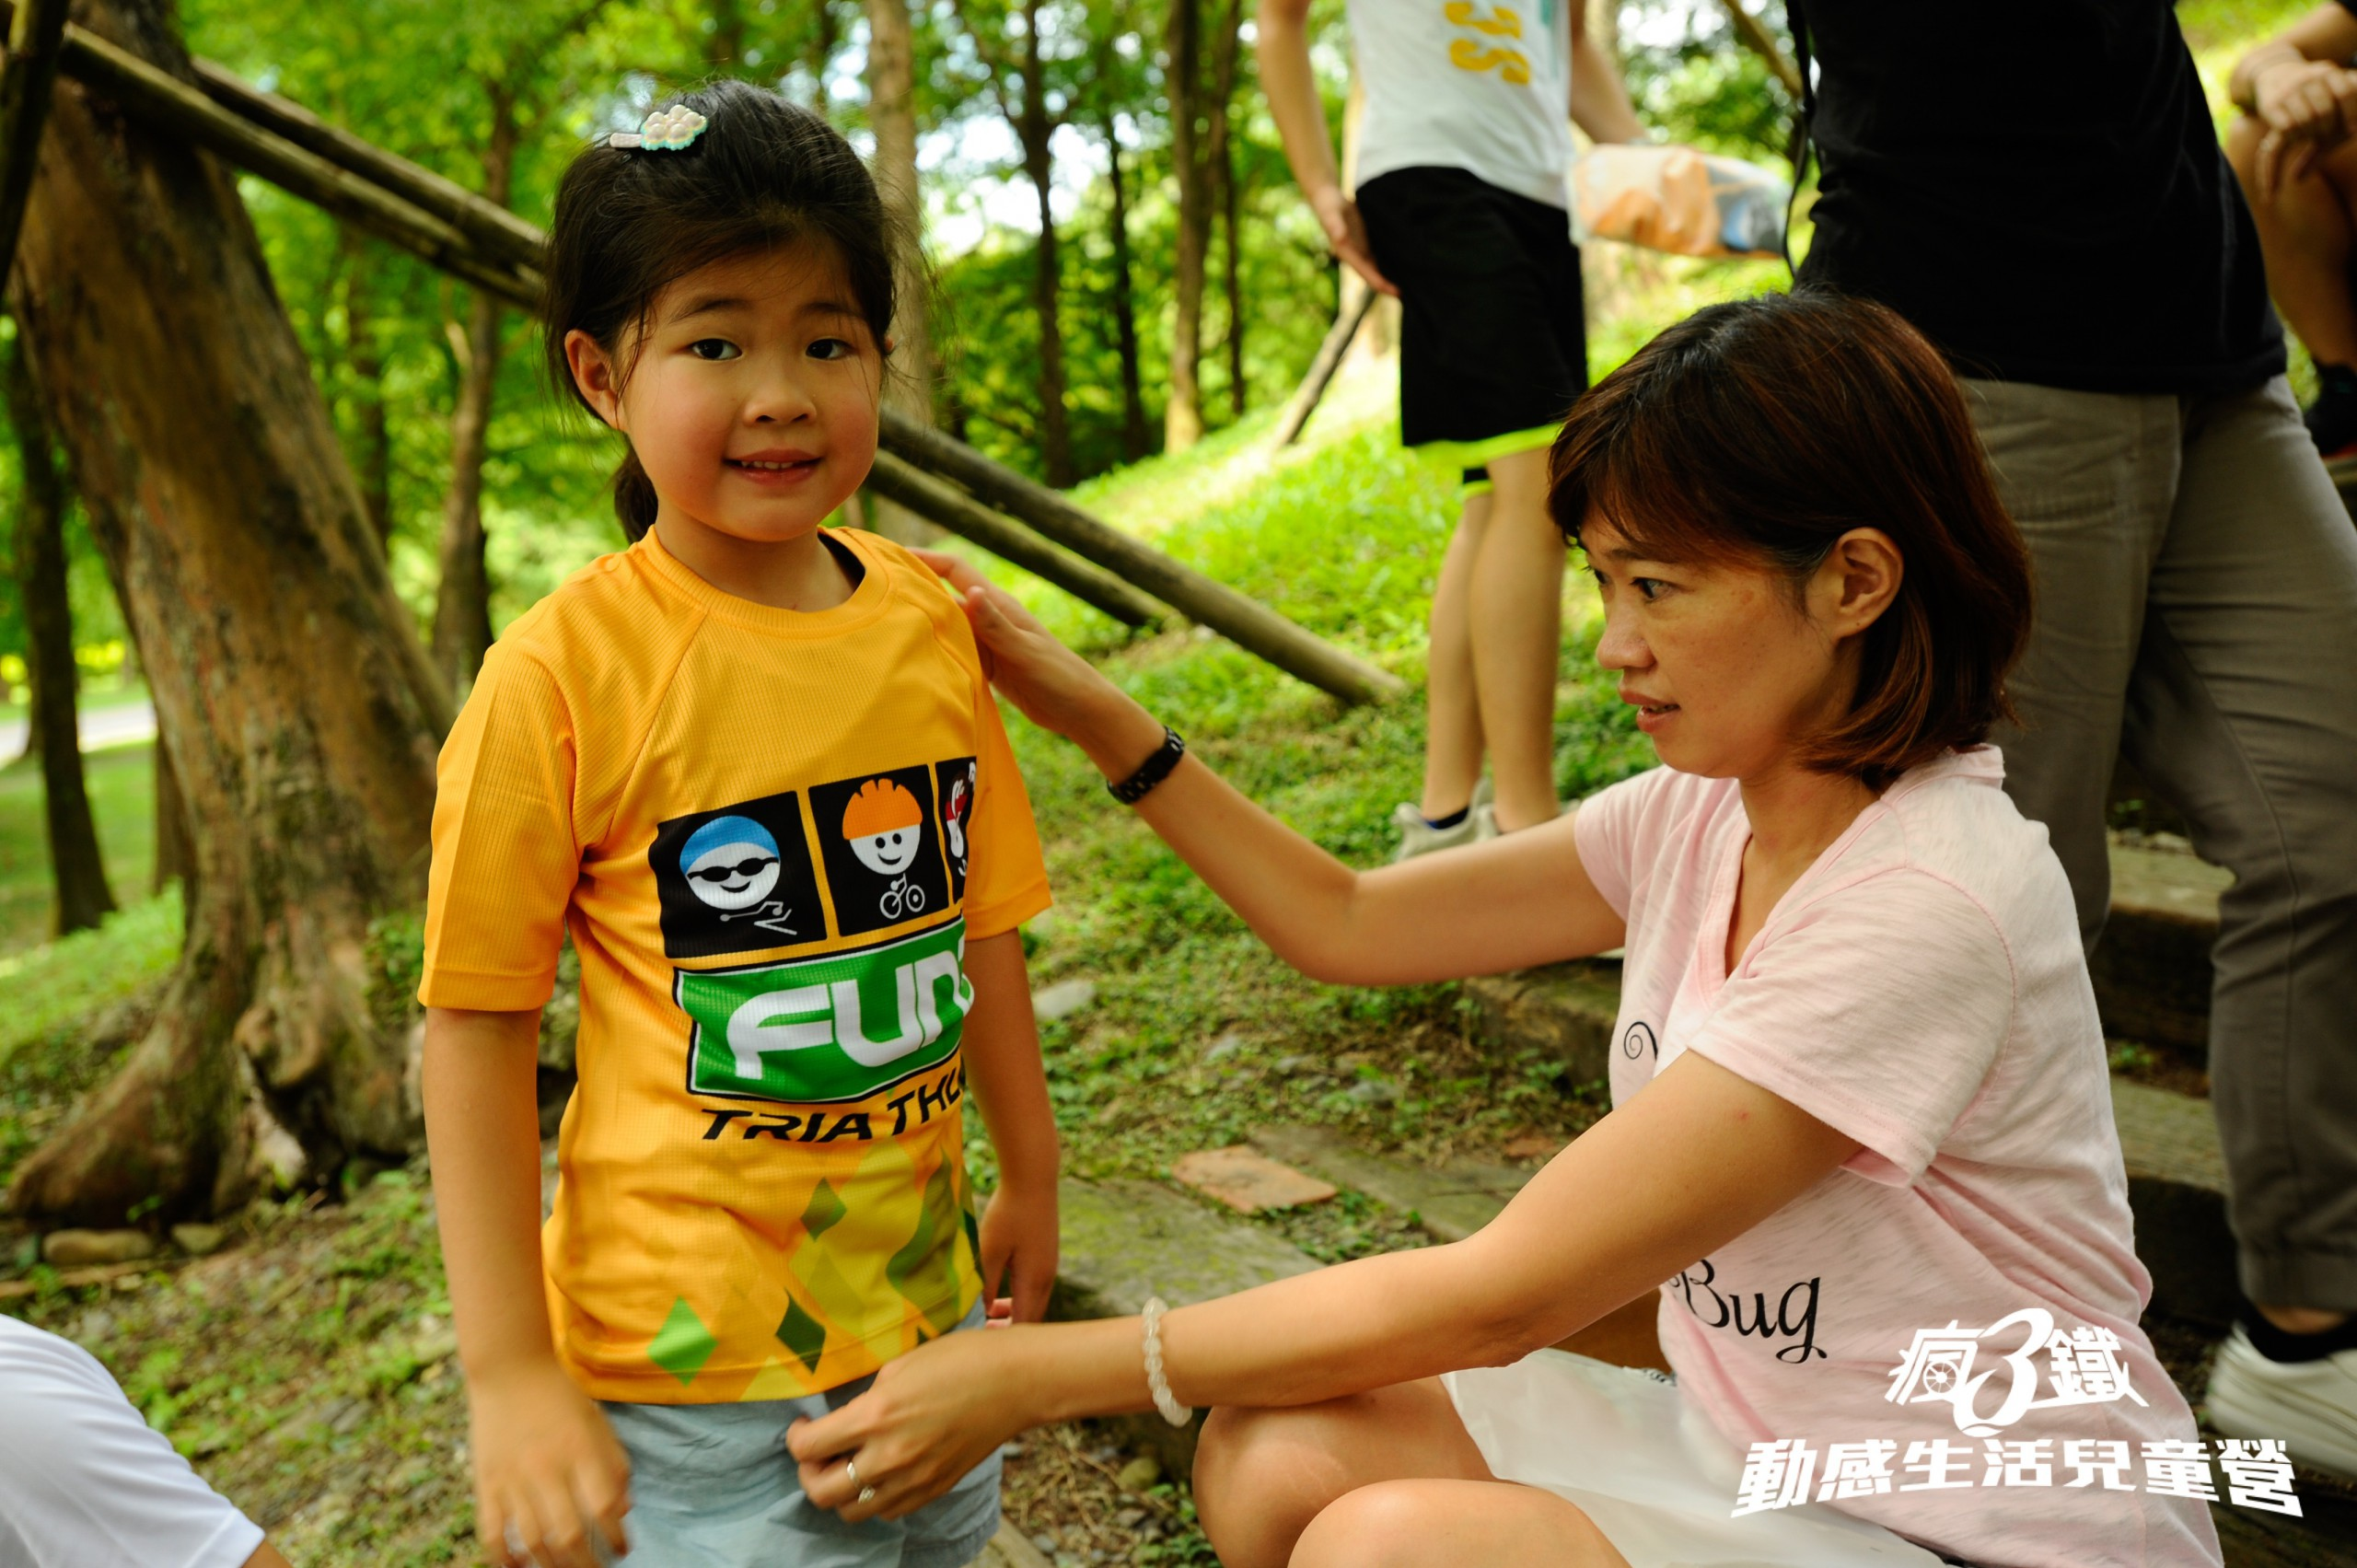 德築-DEZU-project-Fun3sport-children-summer-camp-5